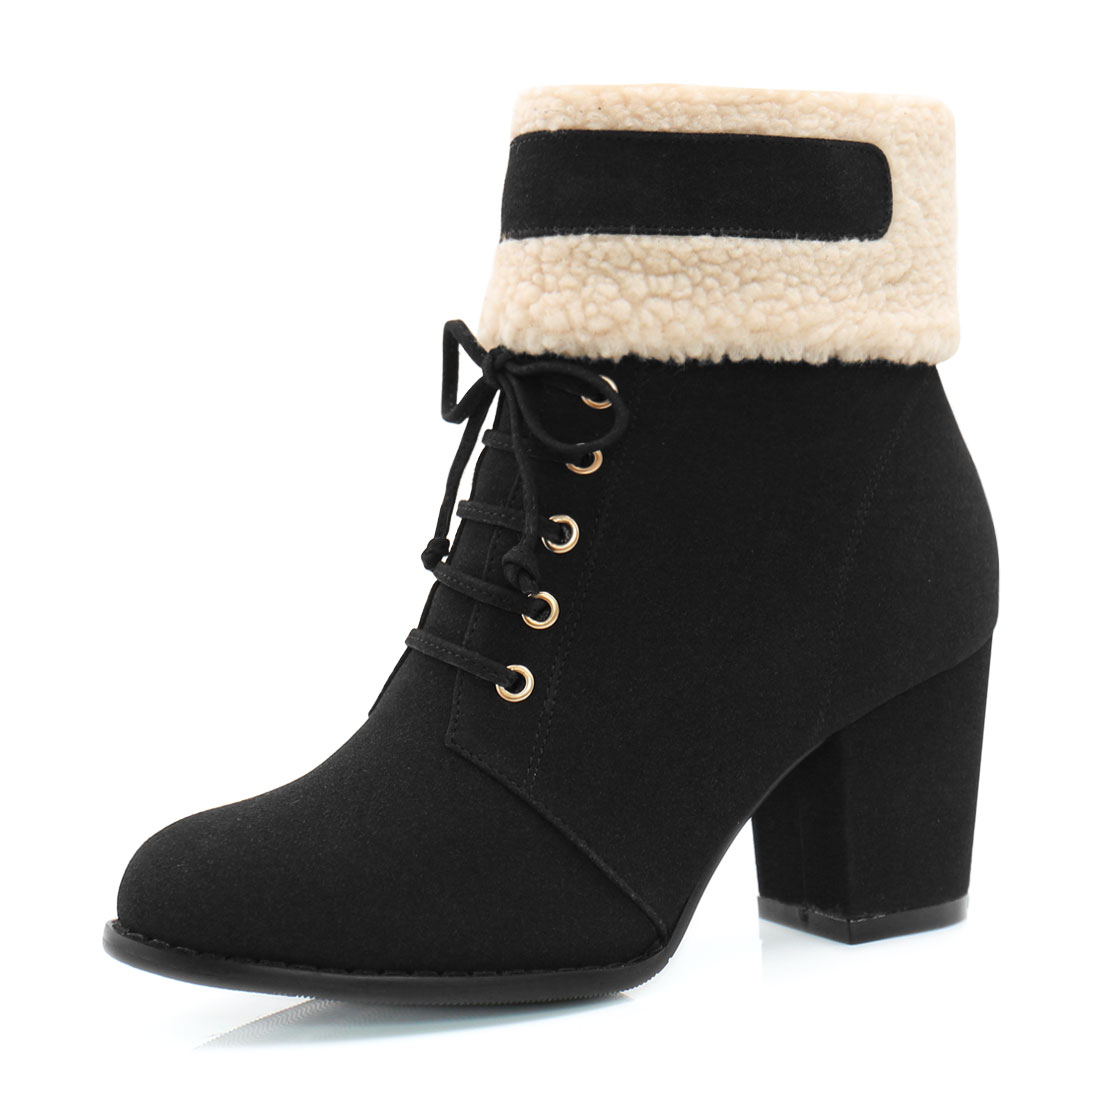 Women Plush Trim Chunky Heel Lace Up Decor Ankle Boots Black US 7.5